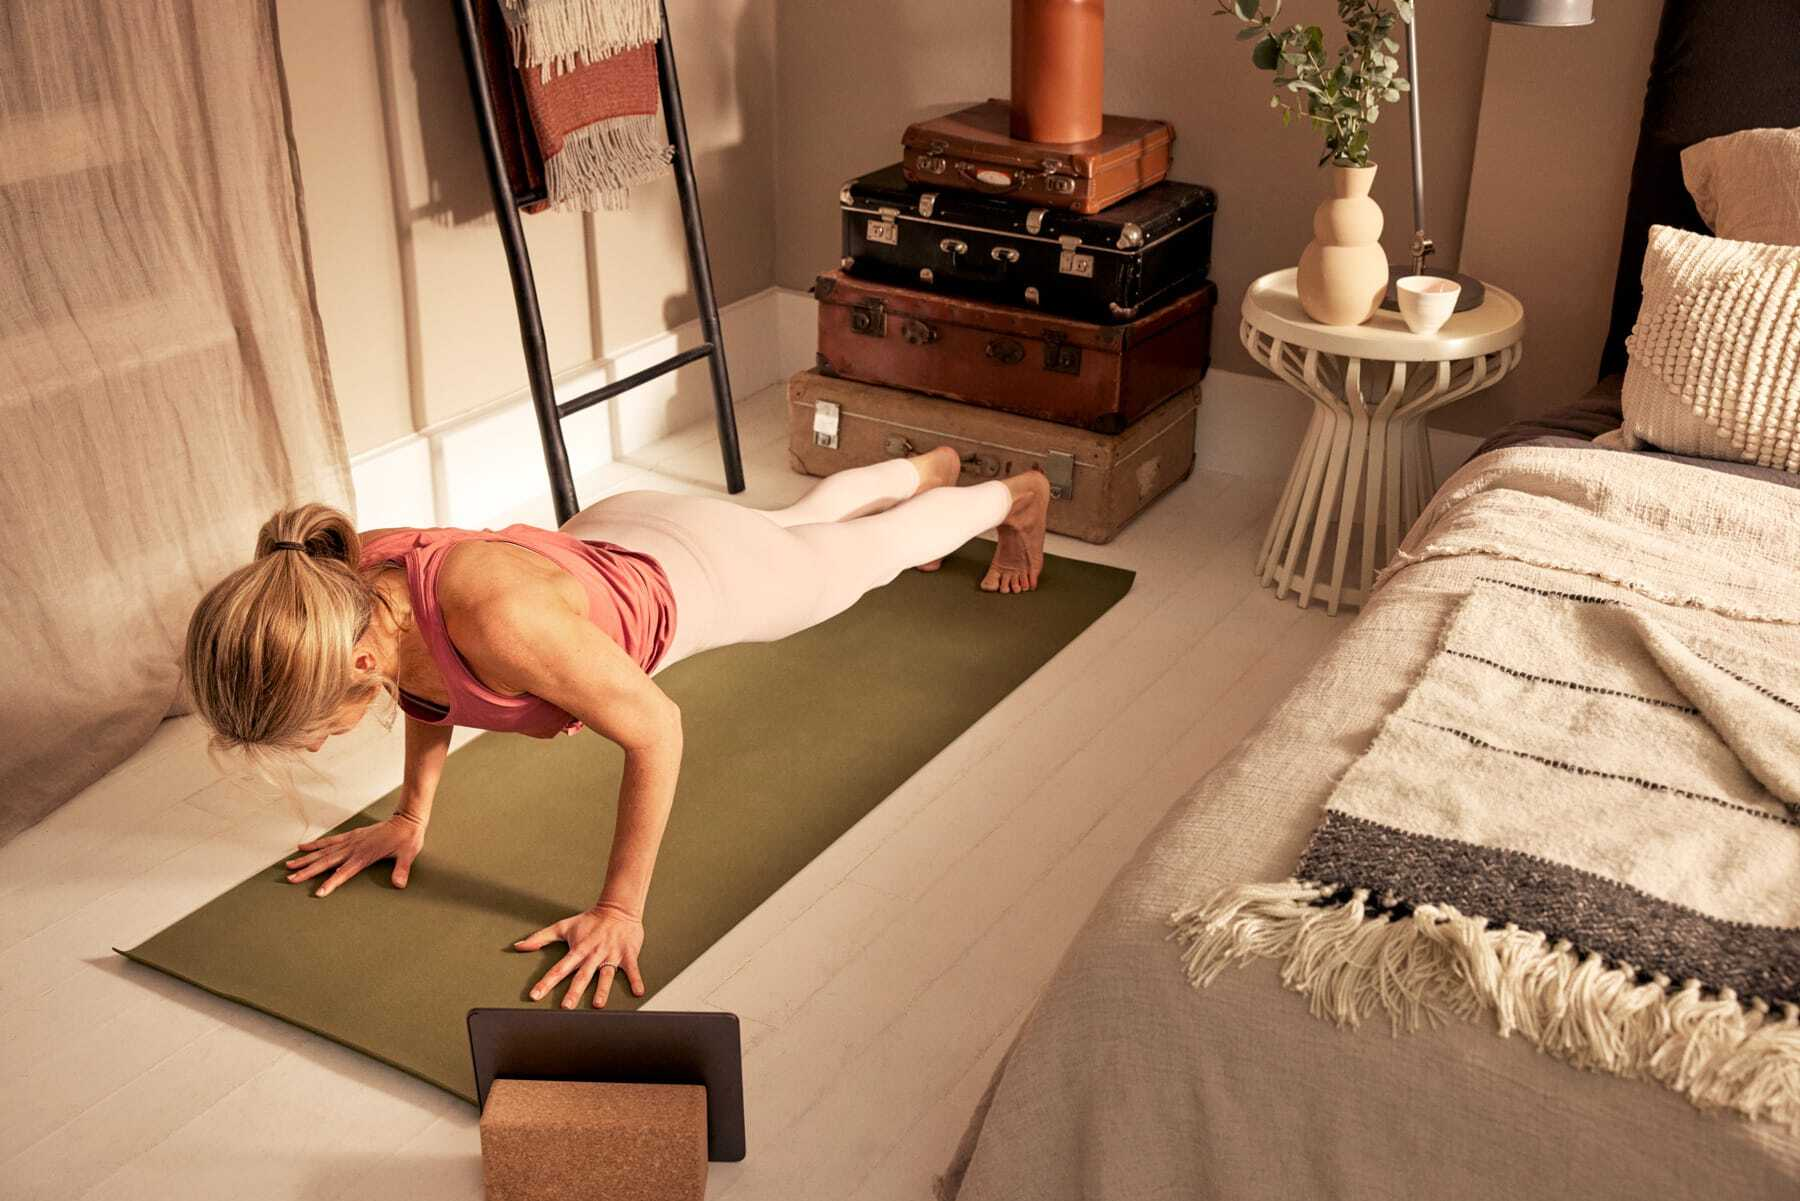 A woman facing downwards stretching on a pilates mat in her bedroom